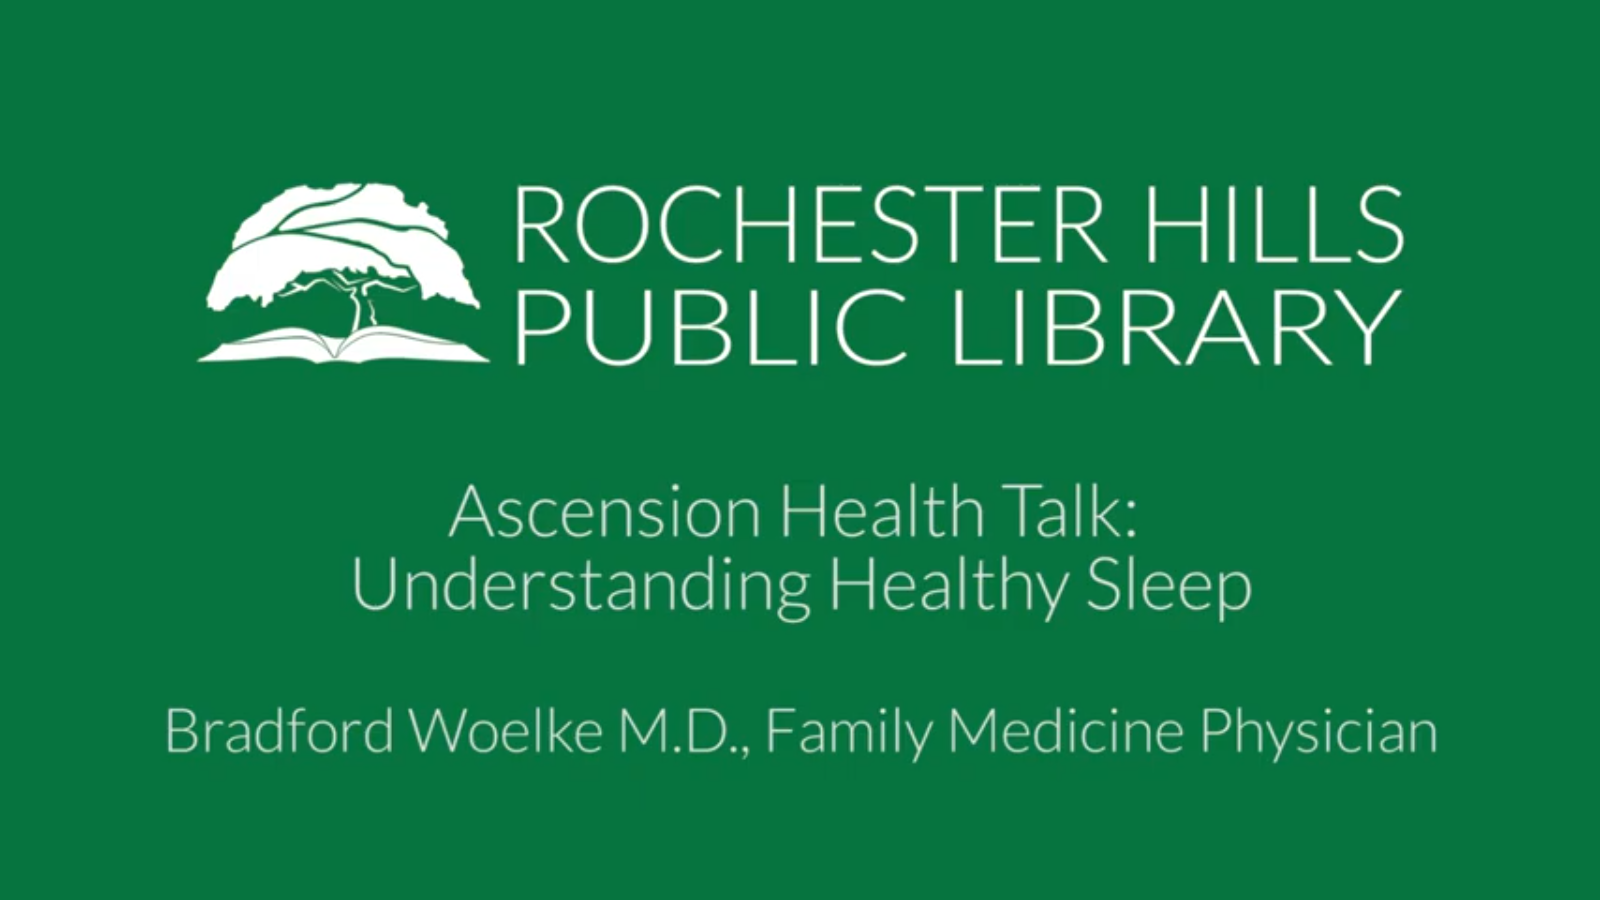 Ascension Health Talk: Understanding Healthy Sleep